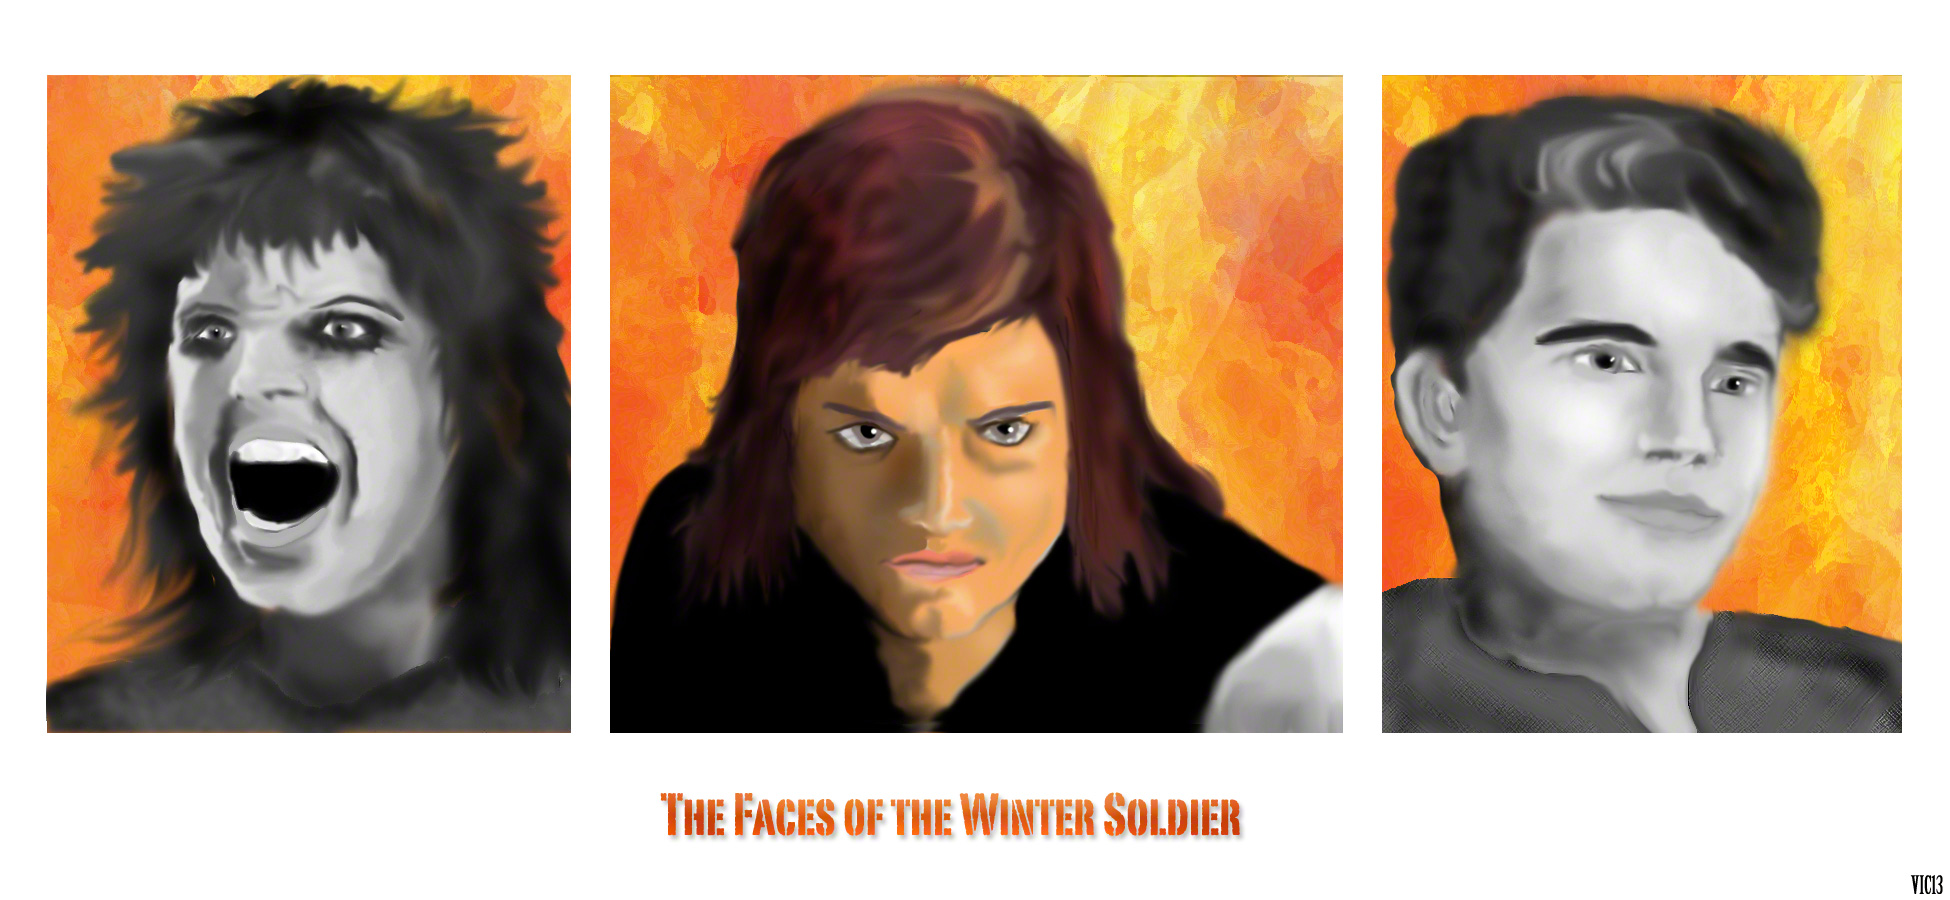 The 3 faces of the Winter Soldier